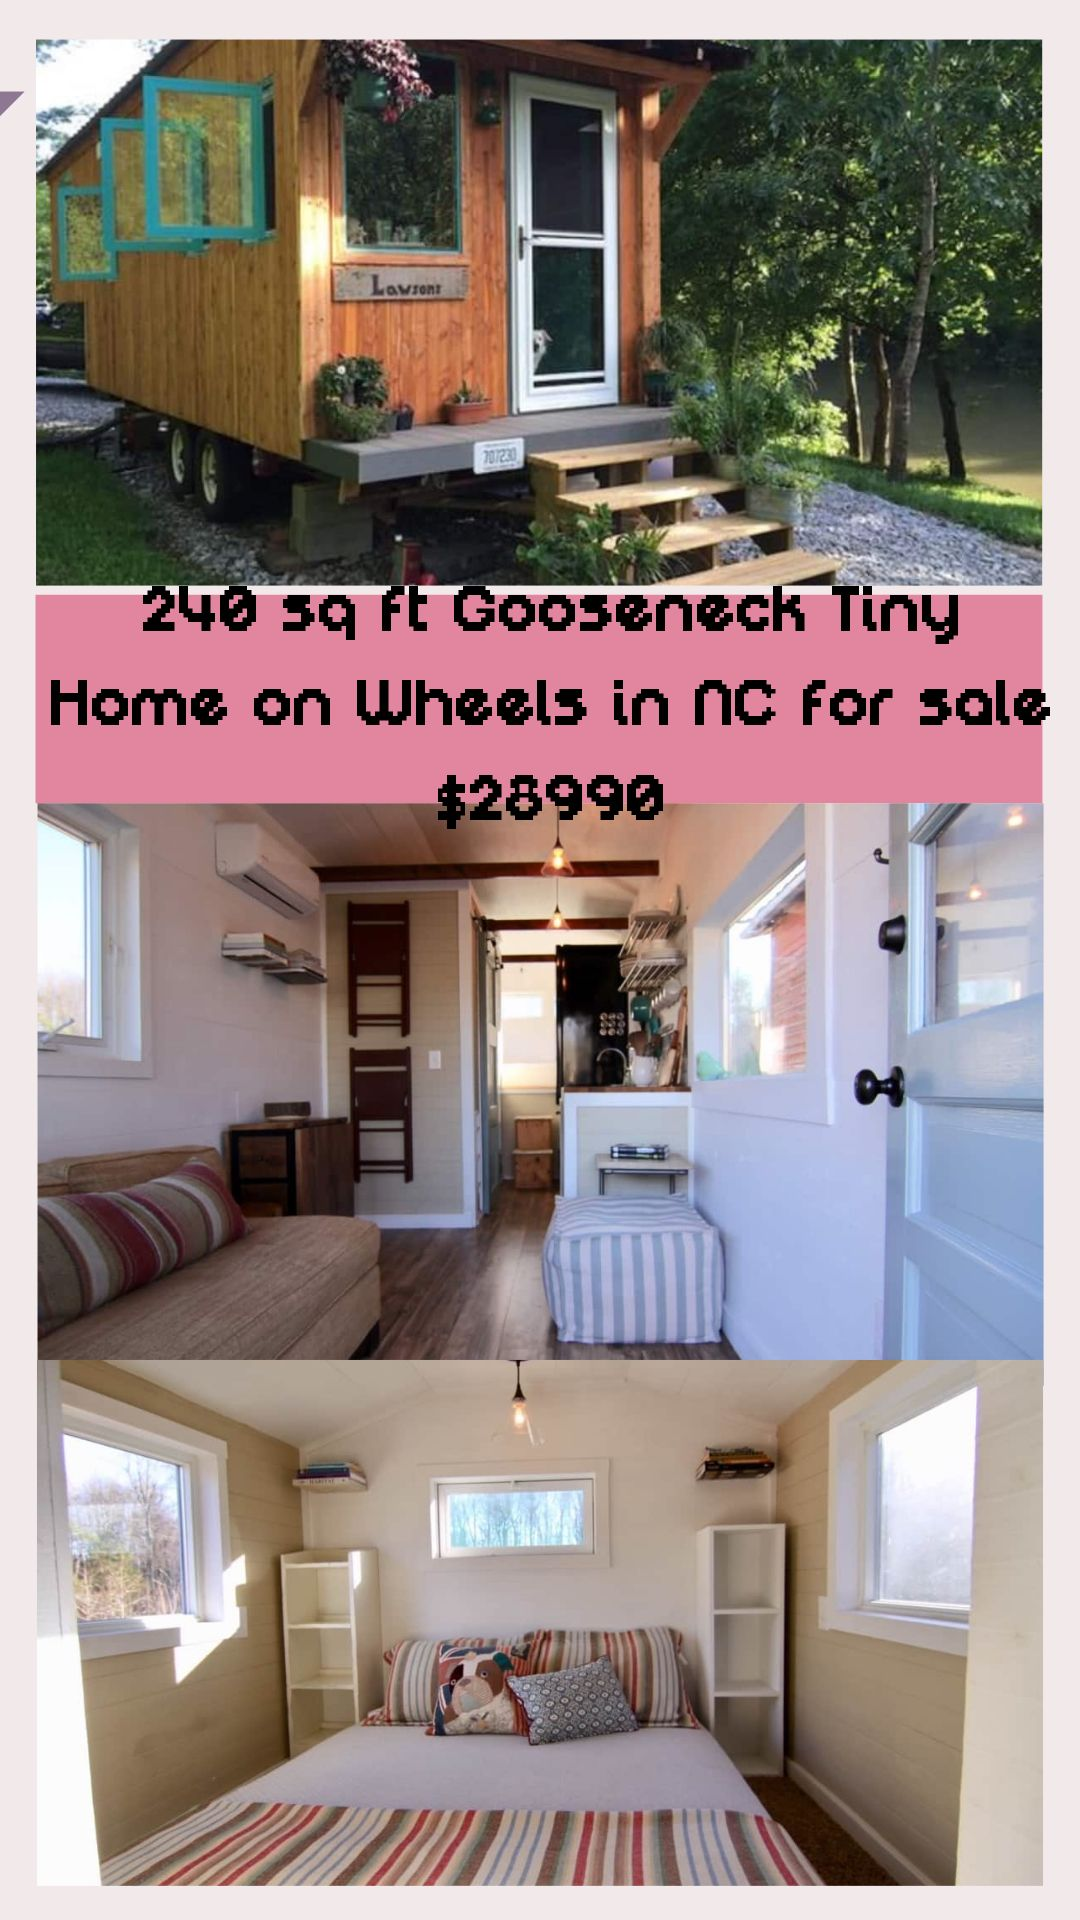 240 Sq Ft Gooseneck Tiny Home On Wheels In Nc For Sale